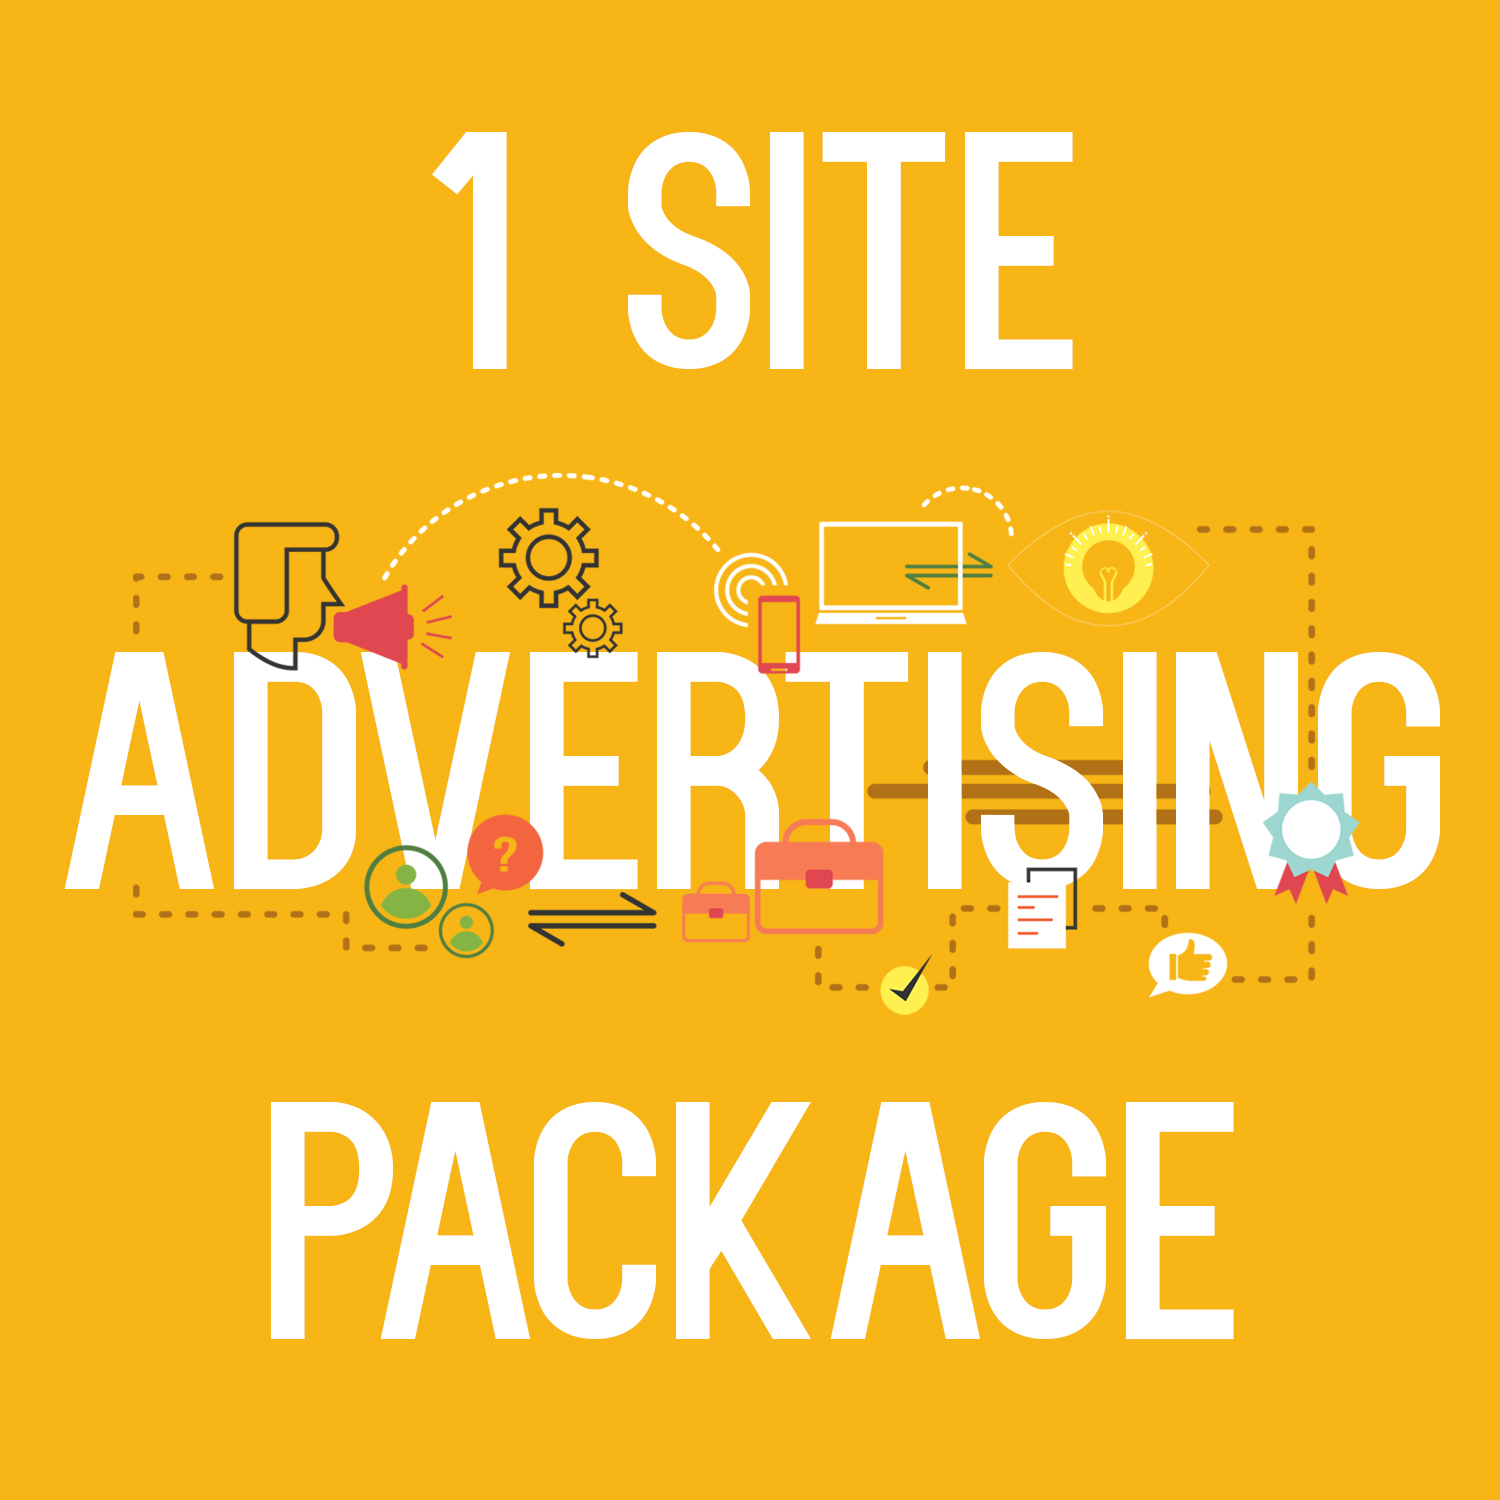 1 site advertising package